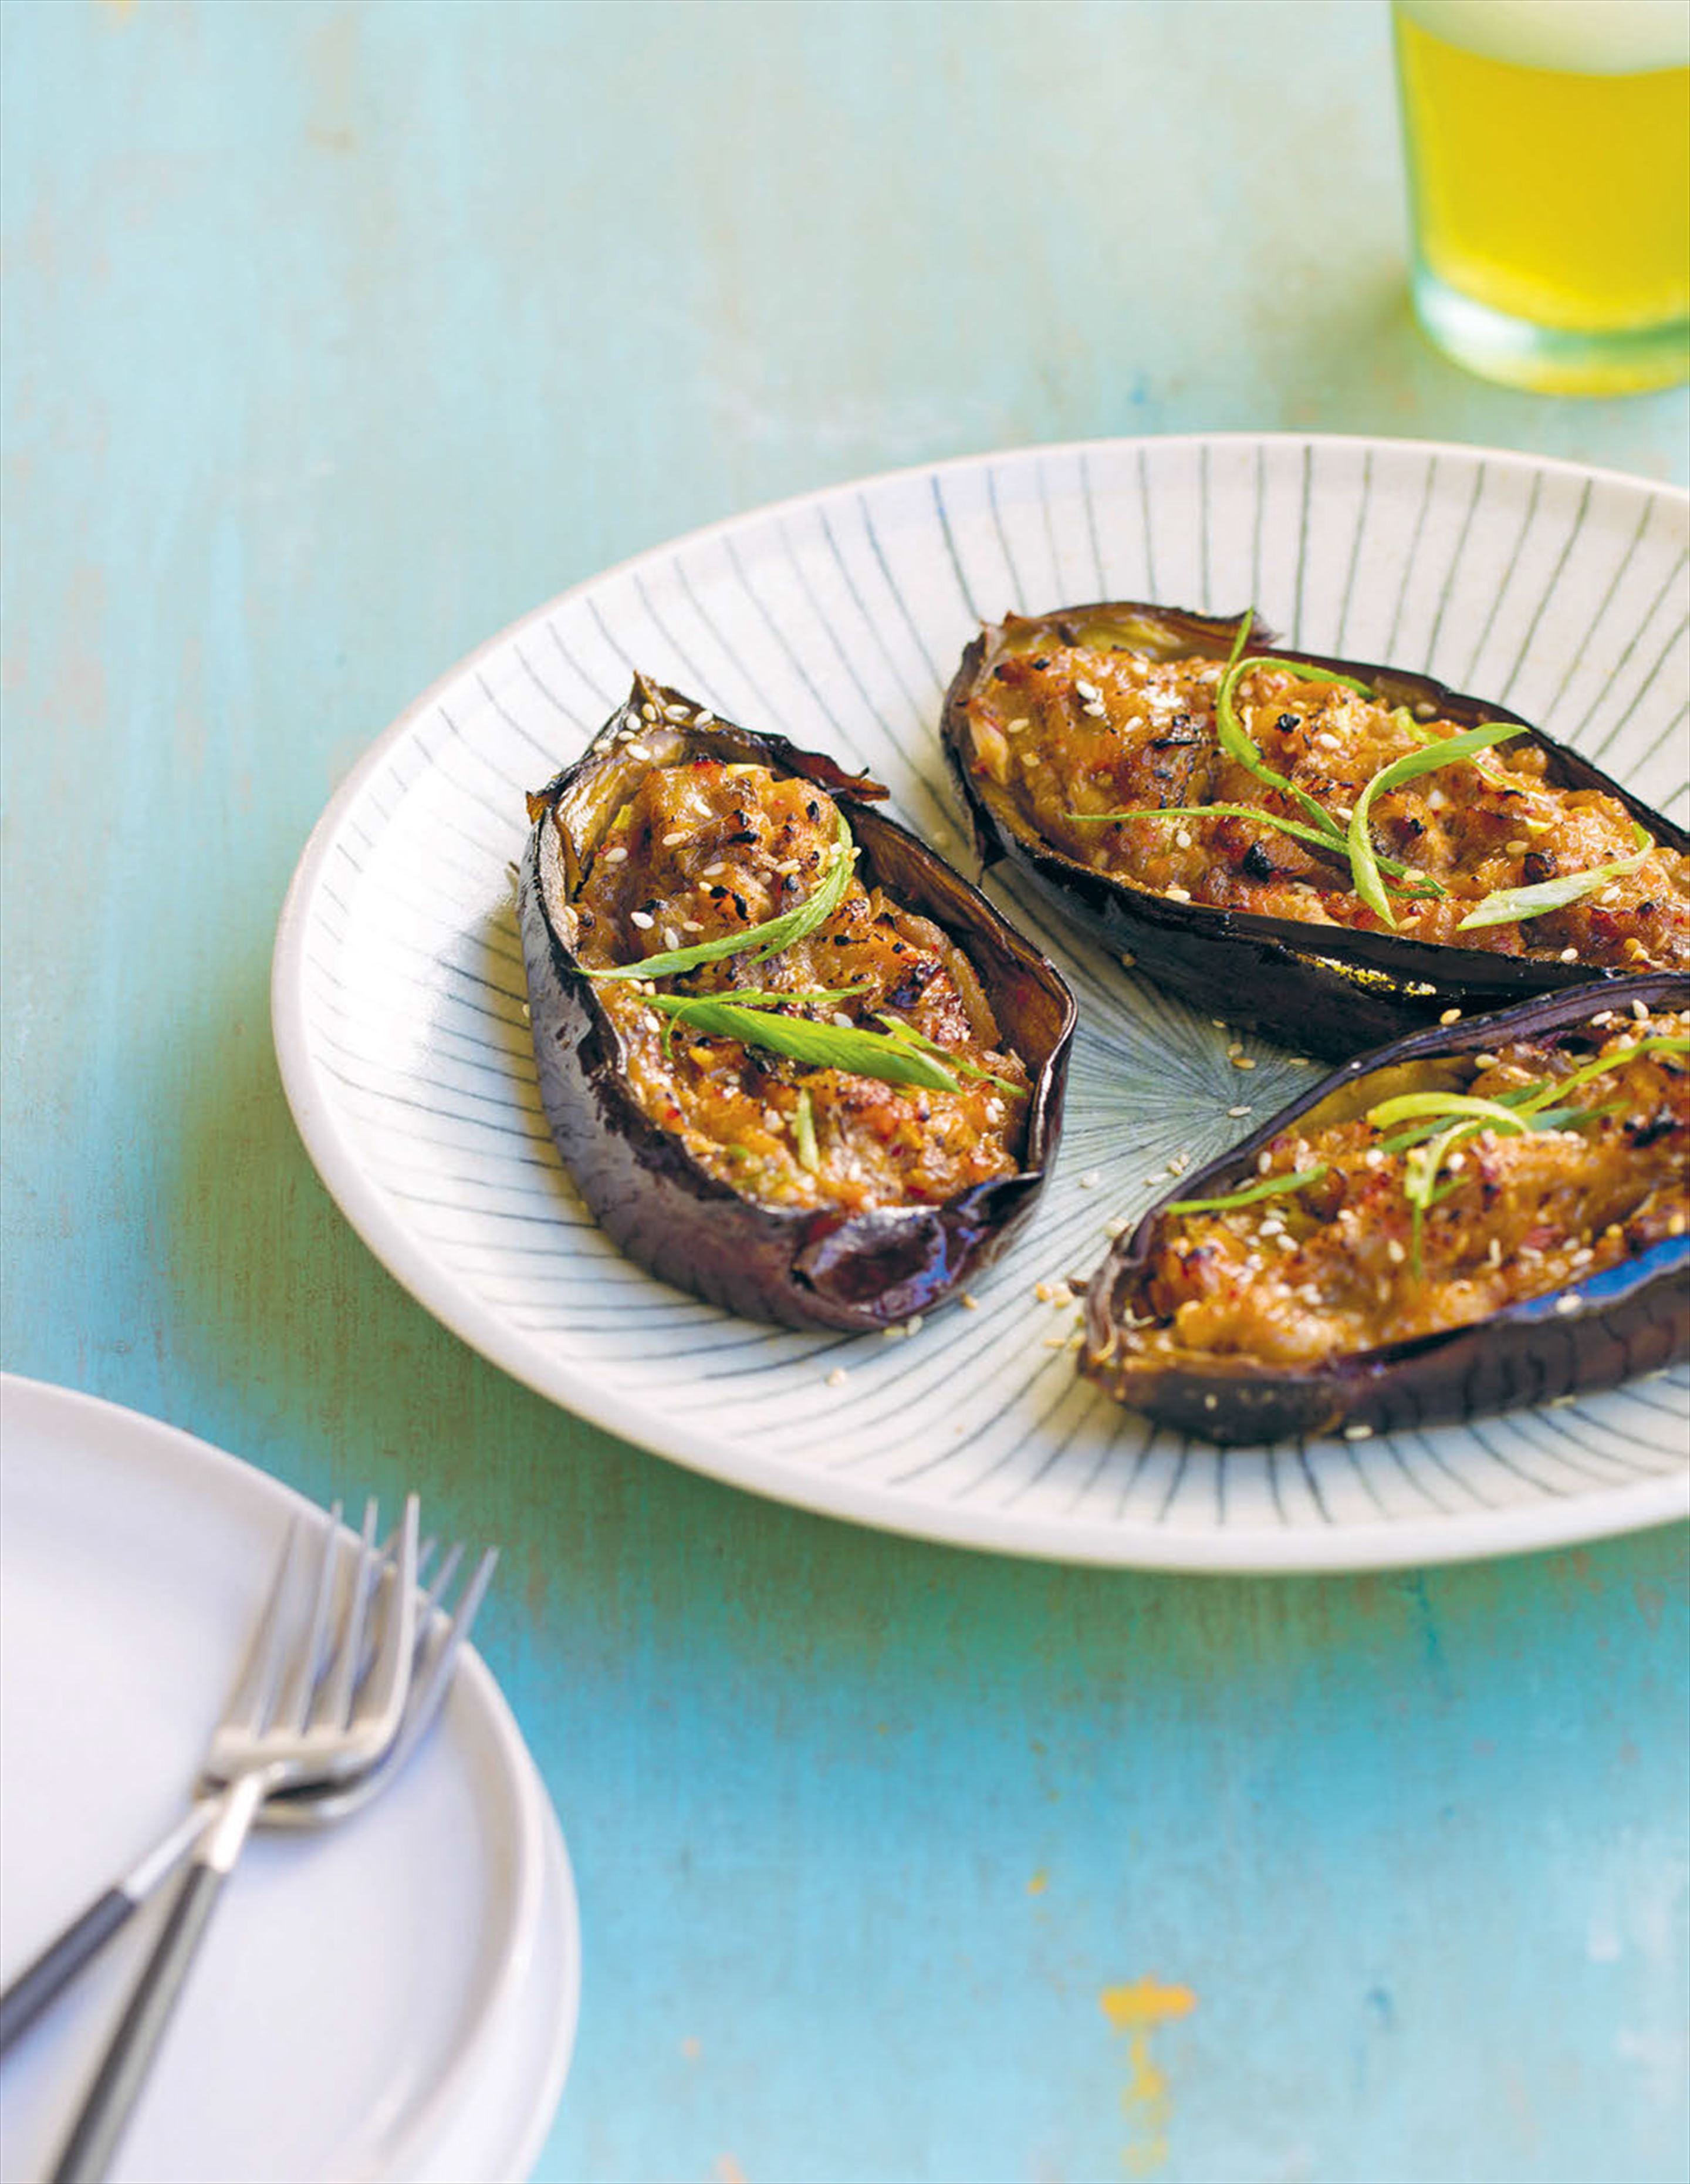 Miso-glazed eggplant with pickled ginger and spring onion